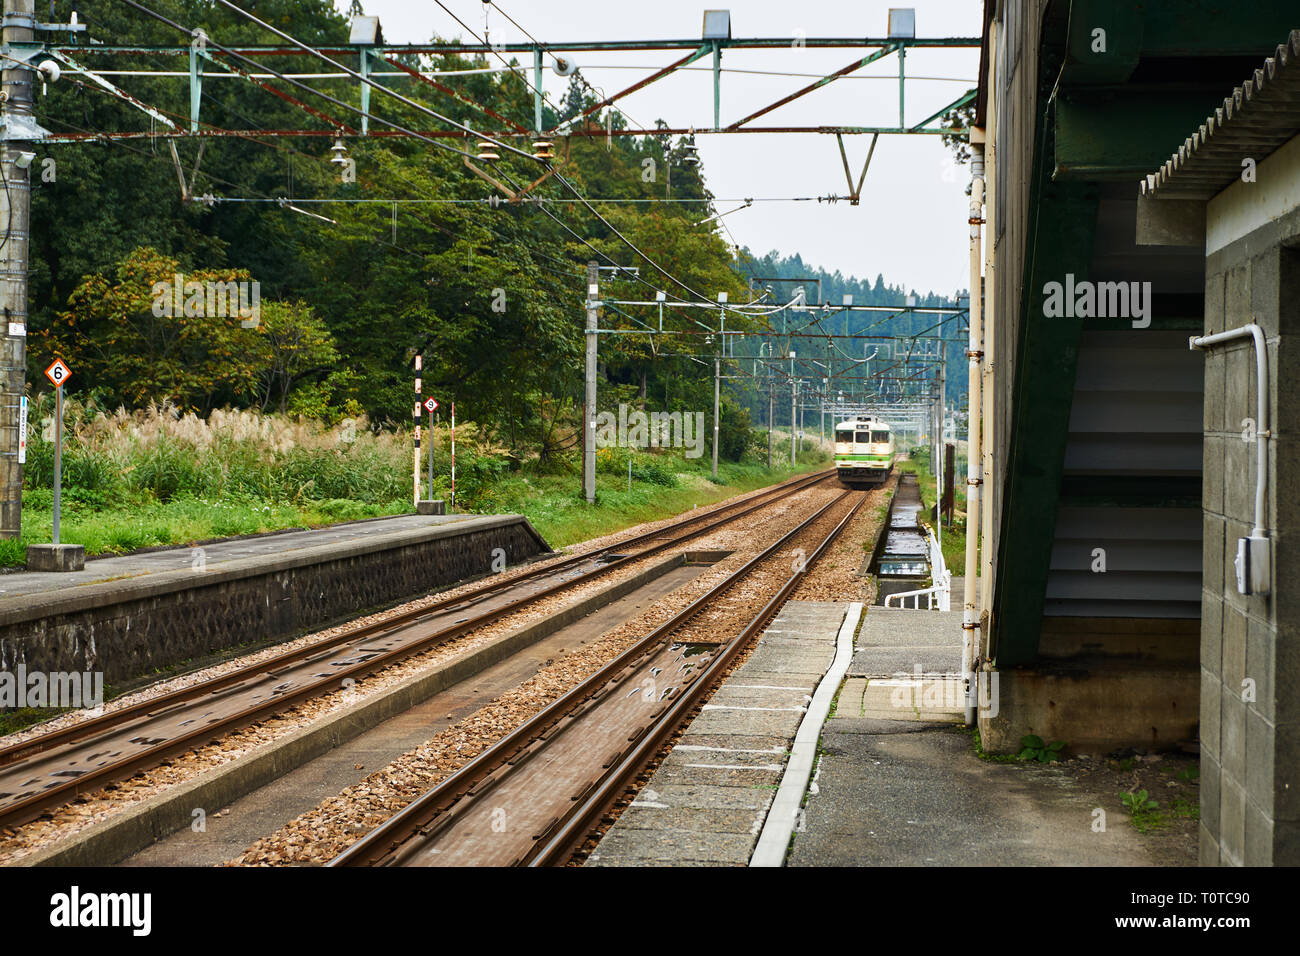 A small train approaches a countryside train station on the JR Joetsu Line in Niigata. - Stock Image